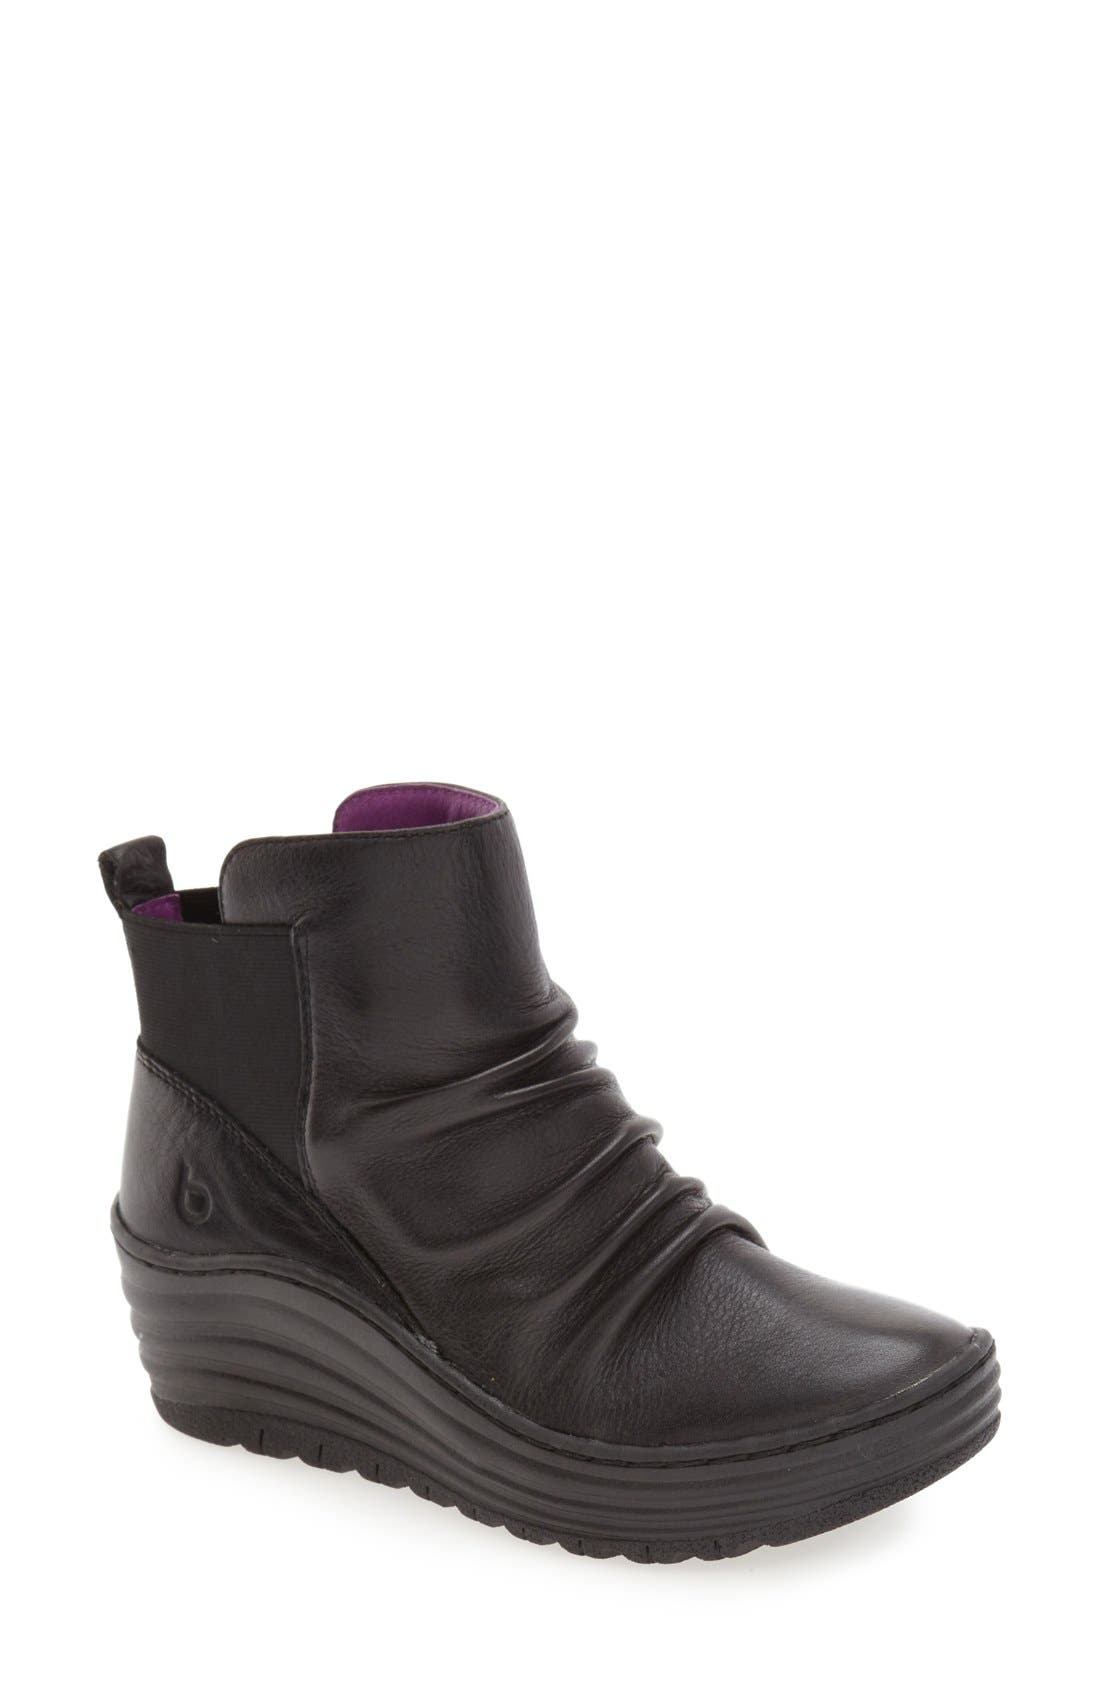 'Gilford' Wedge Bootie,                         Main,                         color, 001